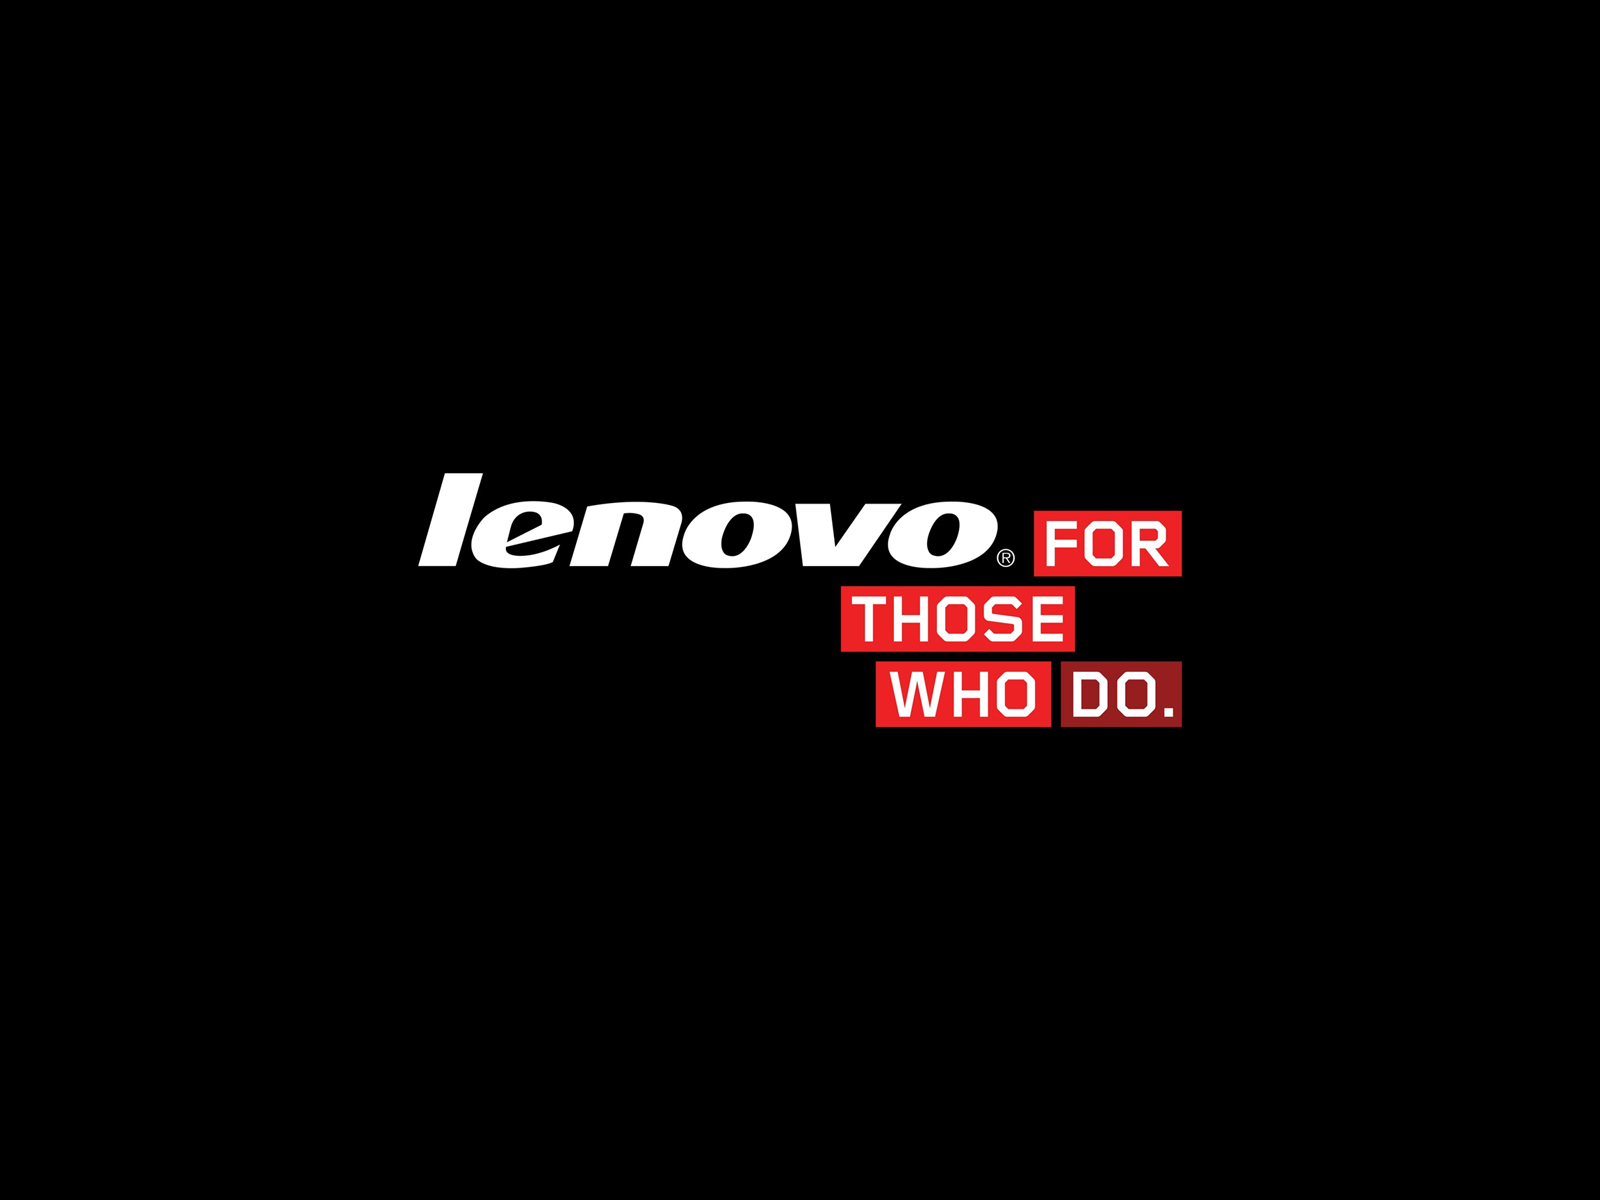 Lenovo Background - For Those Who Do by McKee91 on DeviantArt